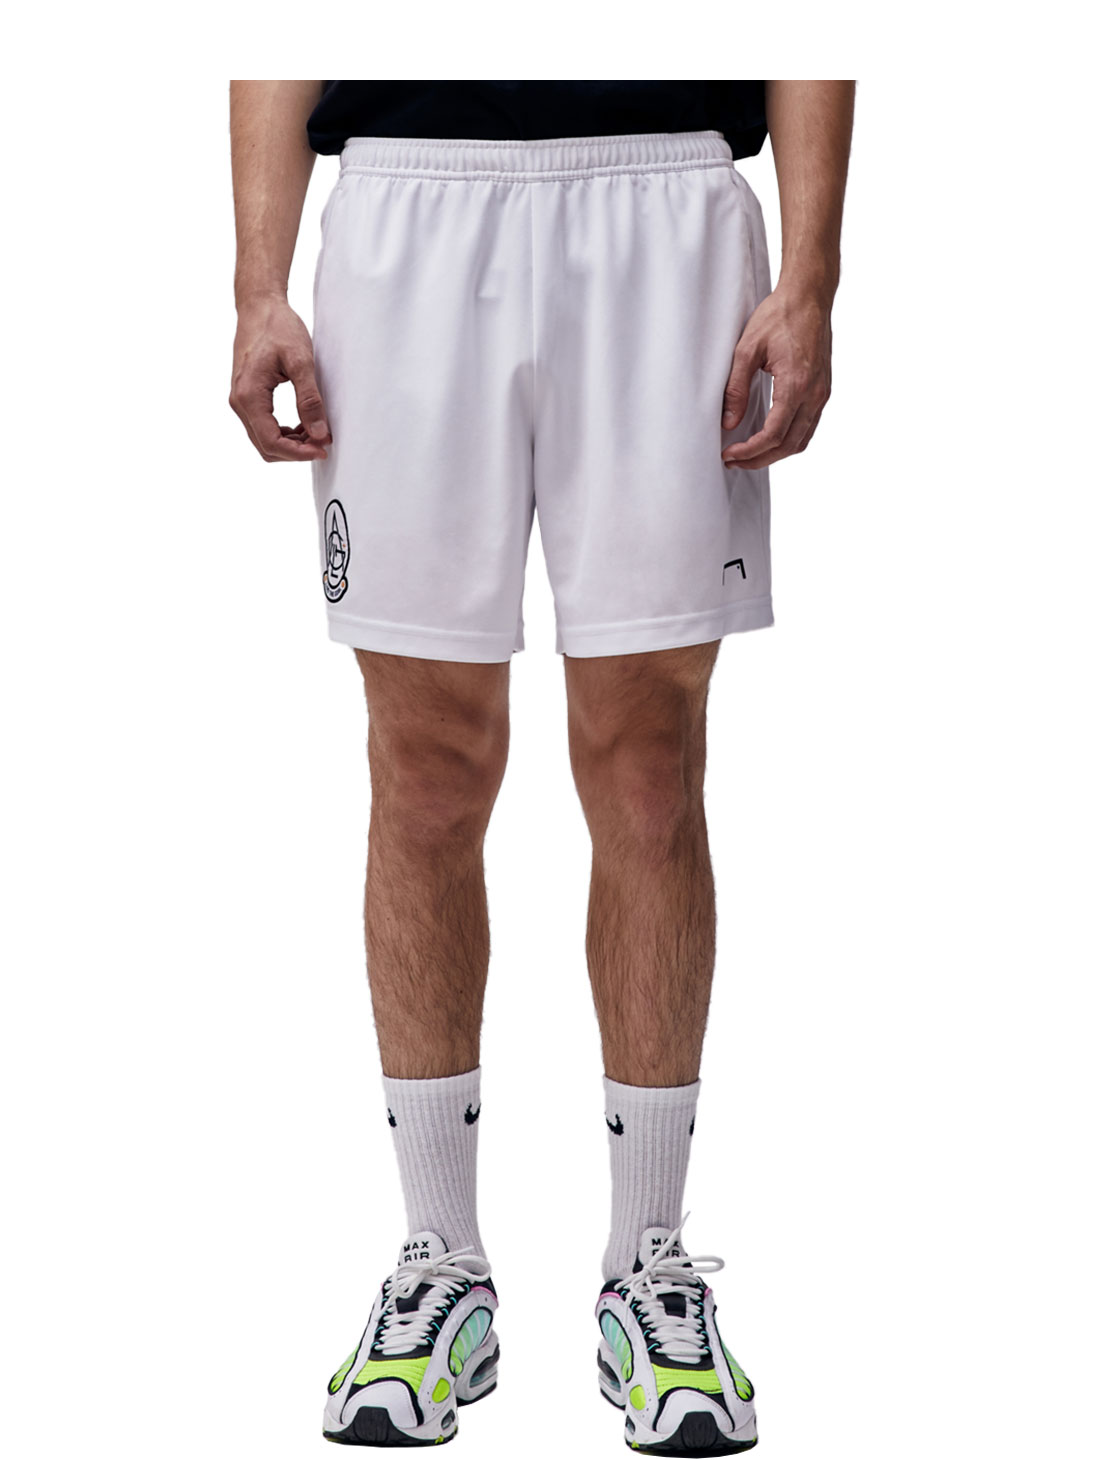 GOALSTUDIO PLAYER EMBLEM SHORTS - WHITE